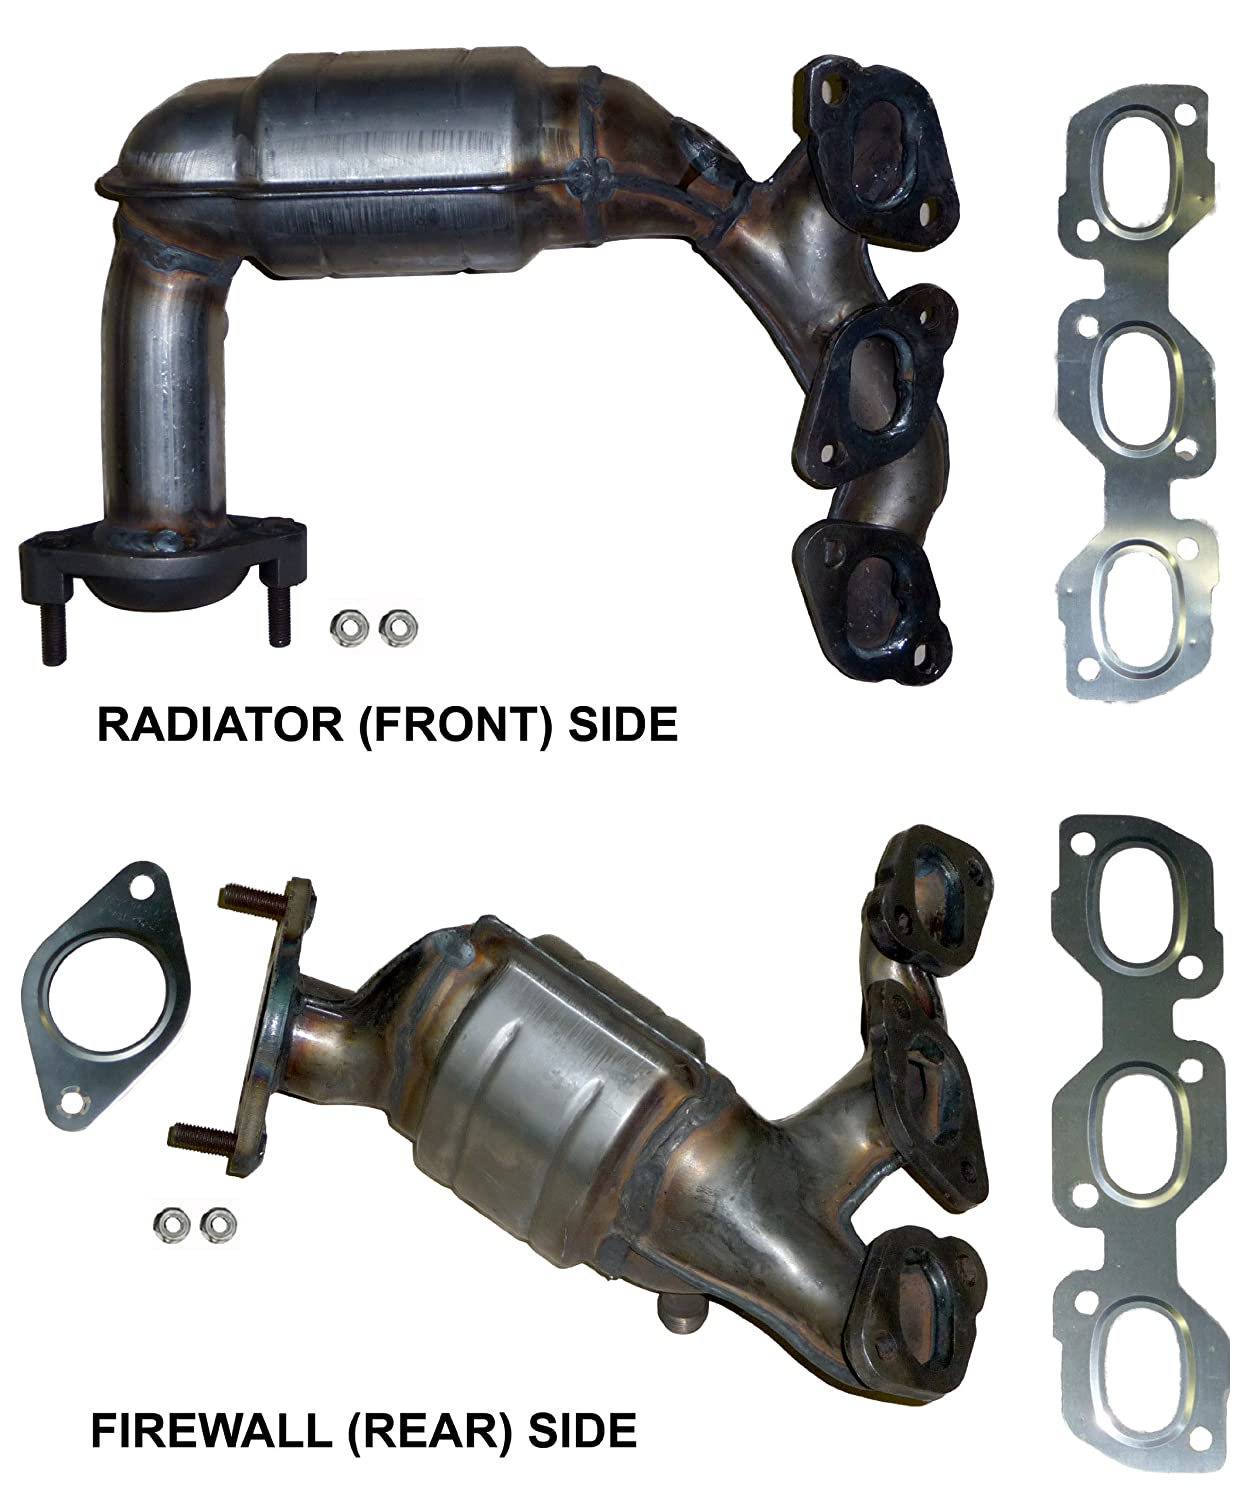 Mazda Tribute Automatic Where Can I Download The Diagram 30 V6 Catalytic Converter Manifold Set Side Radiator Front Bank 2 Lhs And Firewall Rear 1